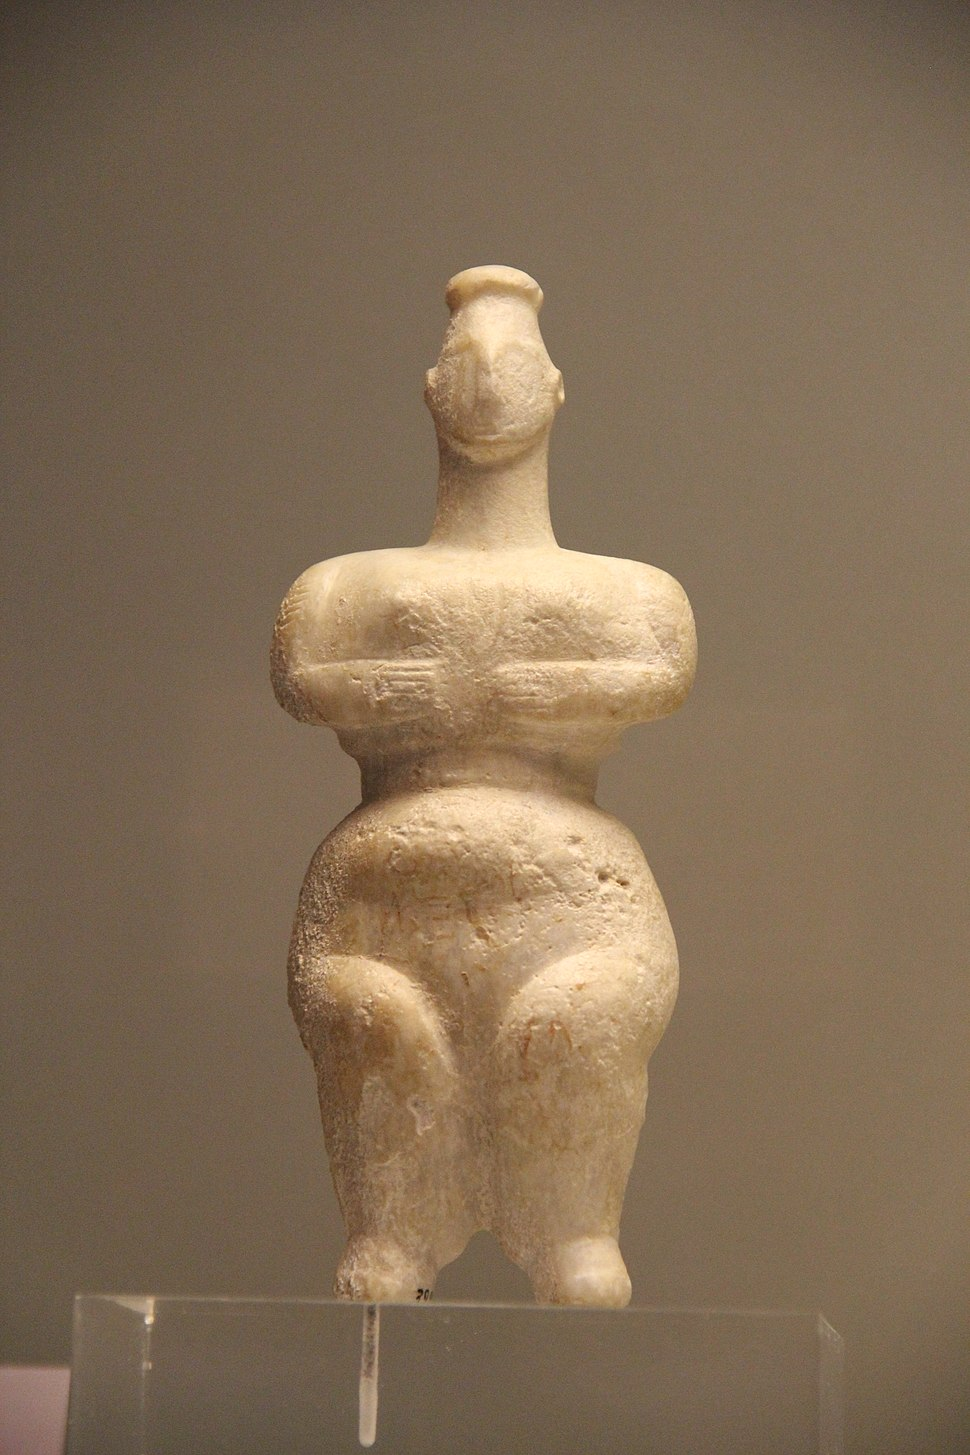 Ancient Greece Neolithic Stone Figurine, 6500-3300 BC